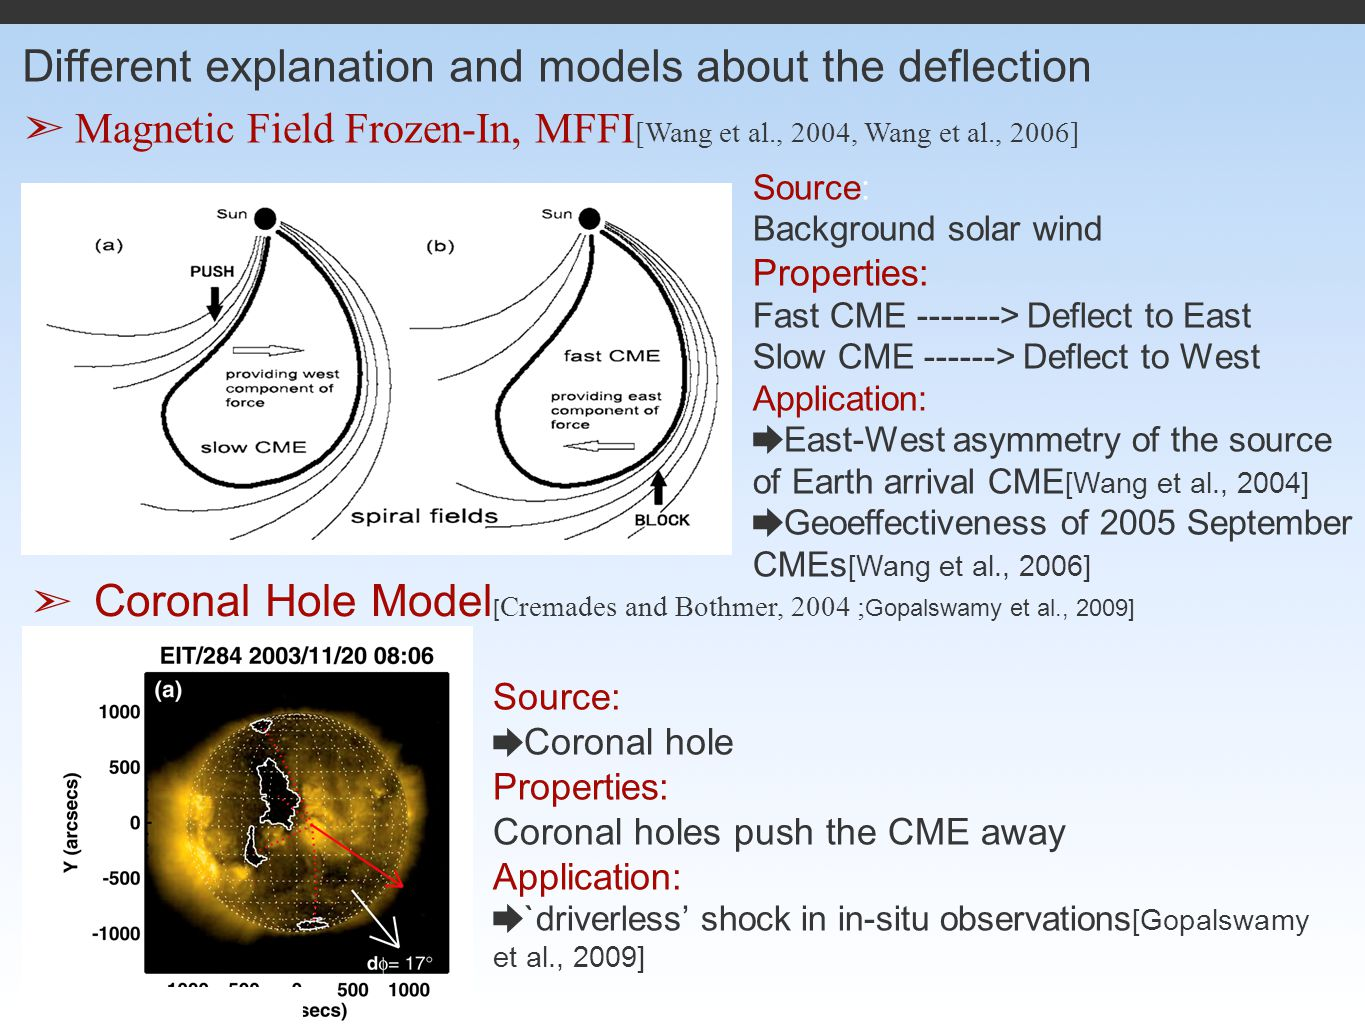 ➣ Magnetic Field Frozen-In, MFFI [Wang et al., 2004, Wang et al., 2006] Source: Background solar wind Properties: Fast CME -------> Deflect to East Slow CME ------> Deflect to West Application: ➨ East-West asymmetry of the source of Earth arrival CME [Wang et al., 2004] ➨ Geoeffectiveness of 2005 September CMEs [Wang et al., 2006] Wang et al., 2004 Different explanation and models about the deflection ➣ Coronal Hole Model [ Cremades and Bothmer, 2004 ; Gopalswamy et al., 2009] Source: ➨ Coronal hole Properties: Coronal holes push the CME away Application: ➨ `driverless' shock in in-situ observations [Gopalswamy et al., 2009] Gopaslwamy et al., 2009